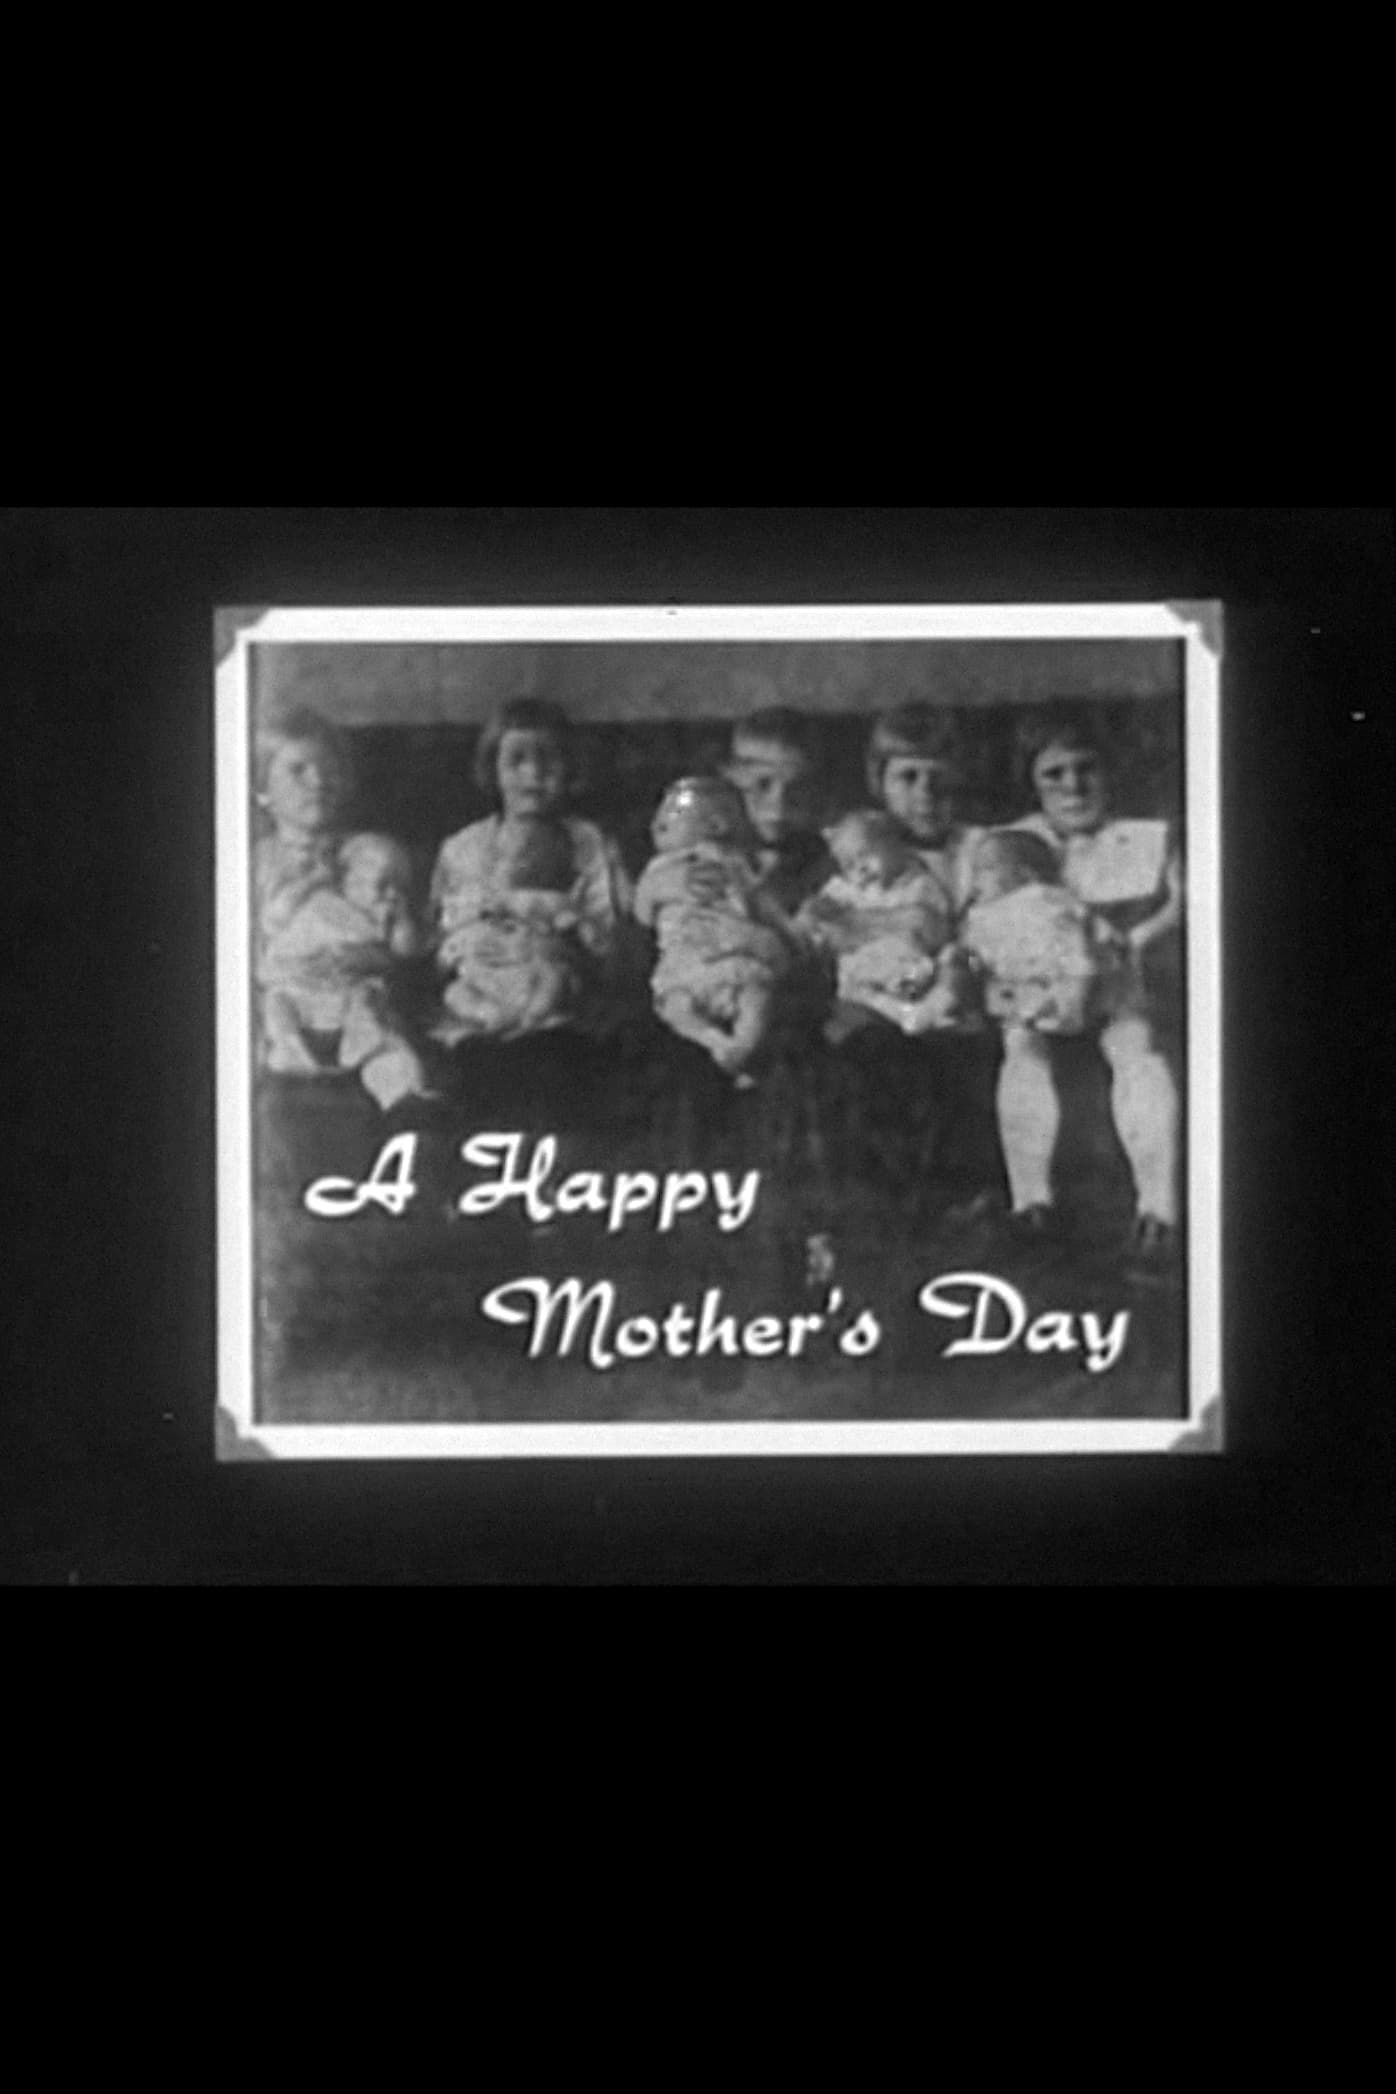 A Happy Mother's Day (1963)